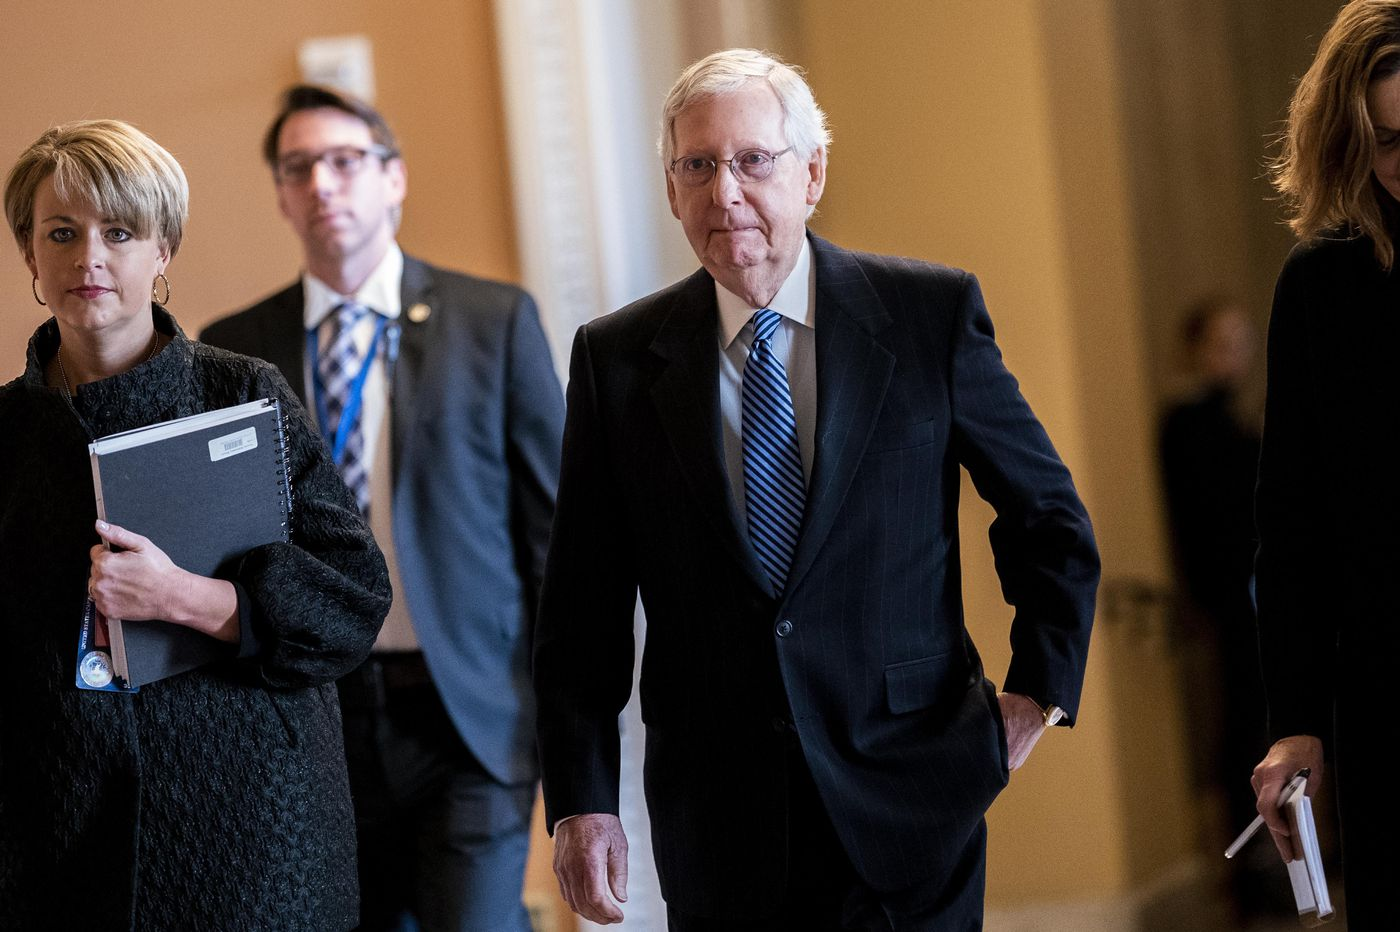 Mitch McConnell doesn't care what you think. He just wants to win.